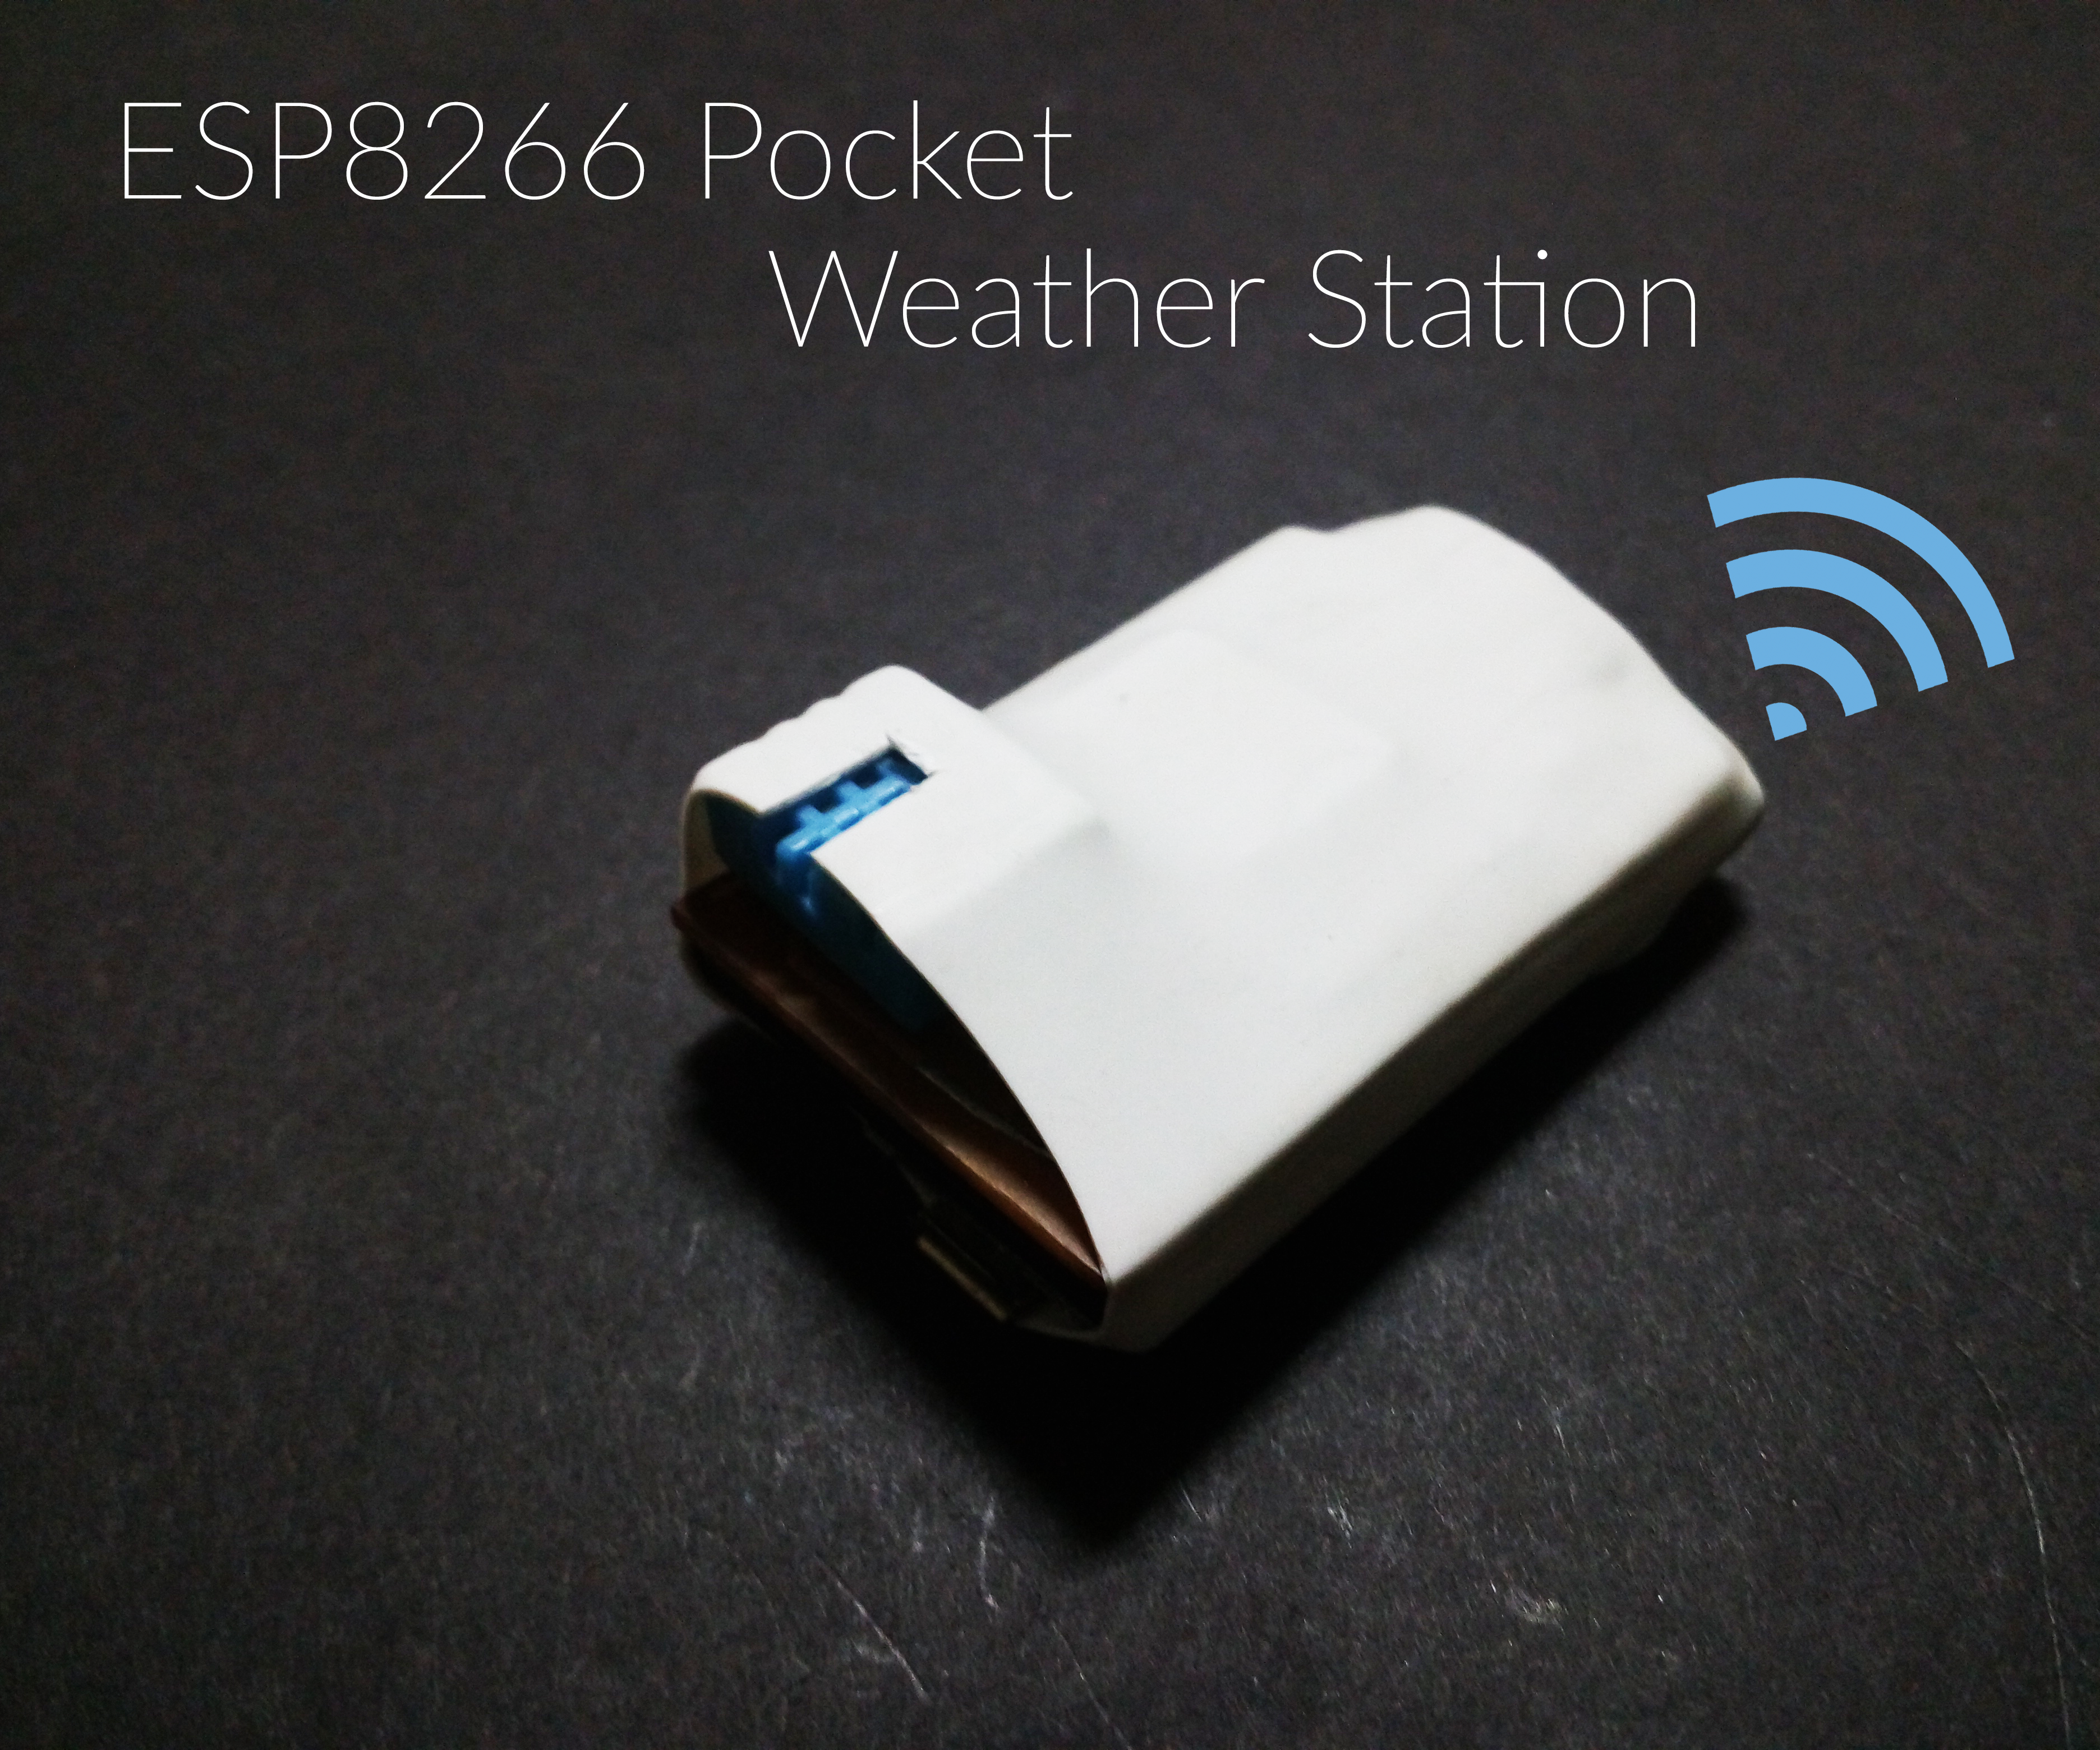 Pocket ESP8266 Weather Station [ No ThingsSpeak] [Battery Powered]